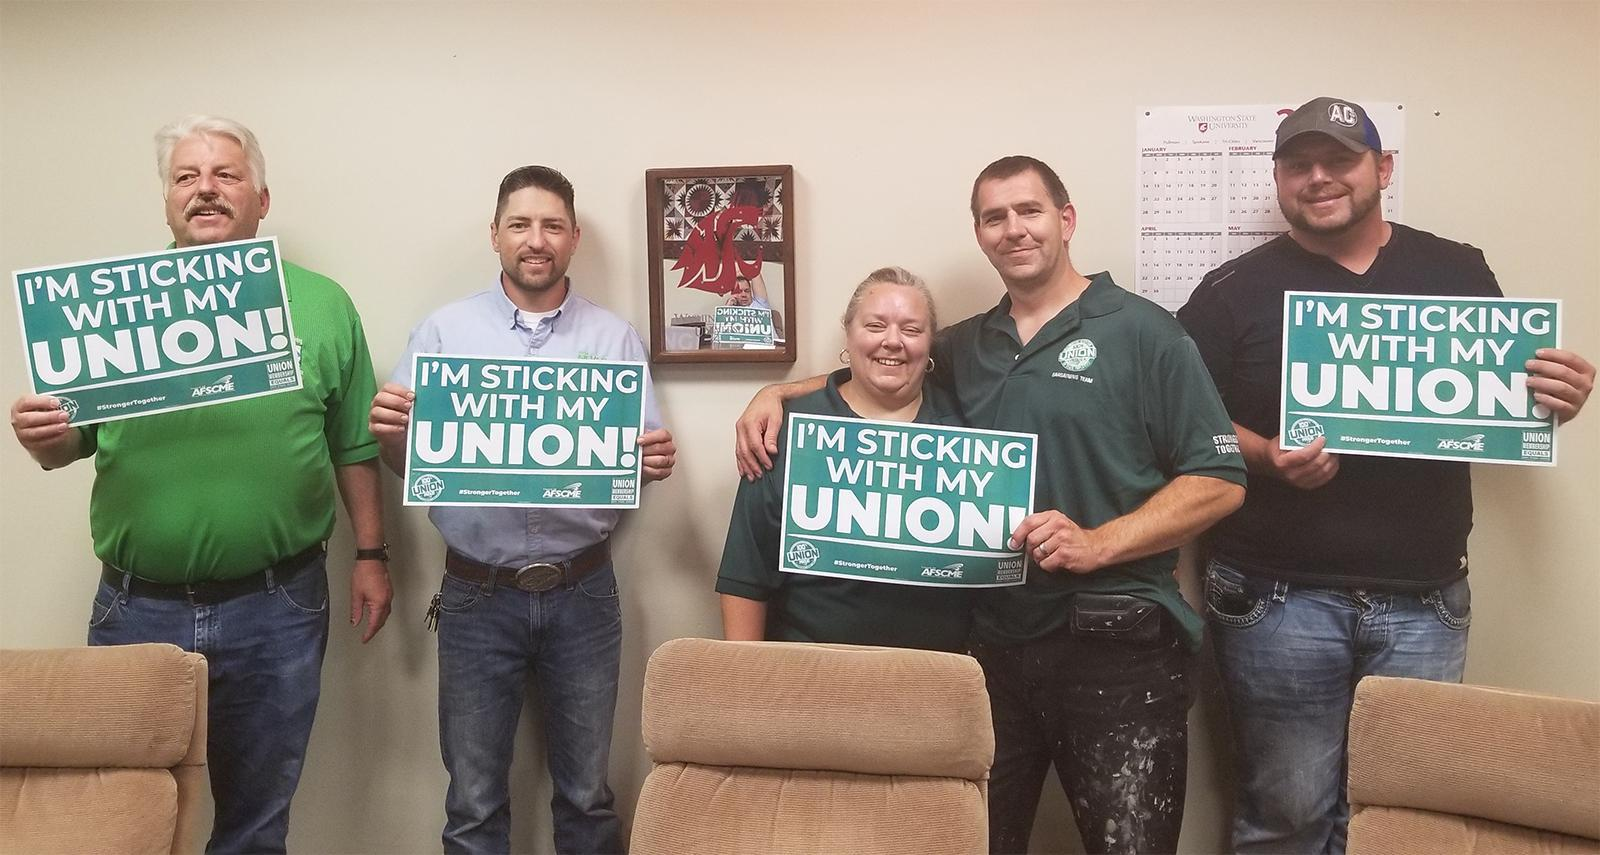 WSU bargaining update 7/18/18